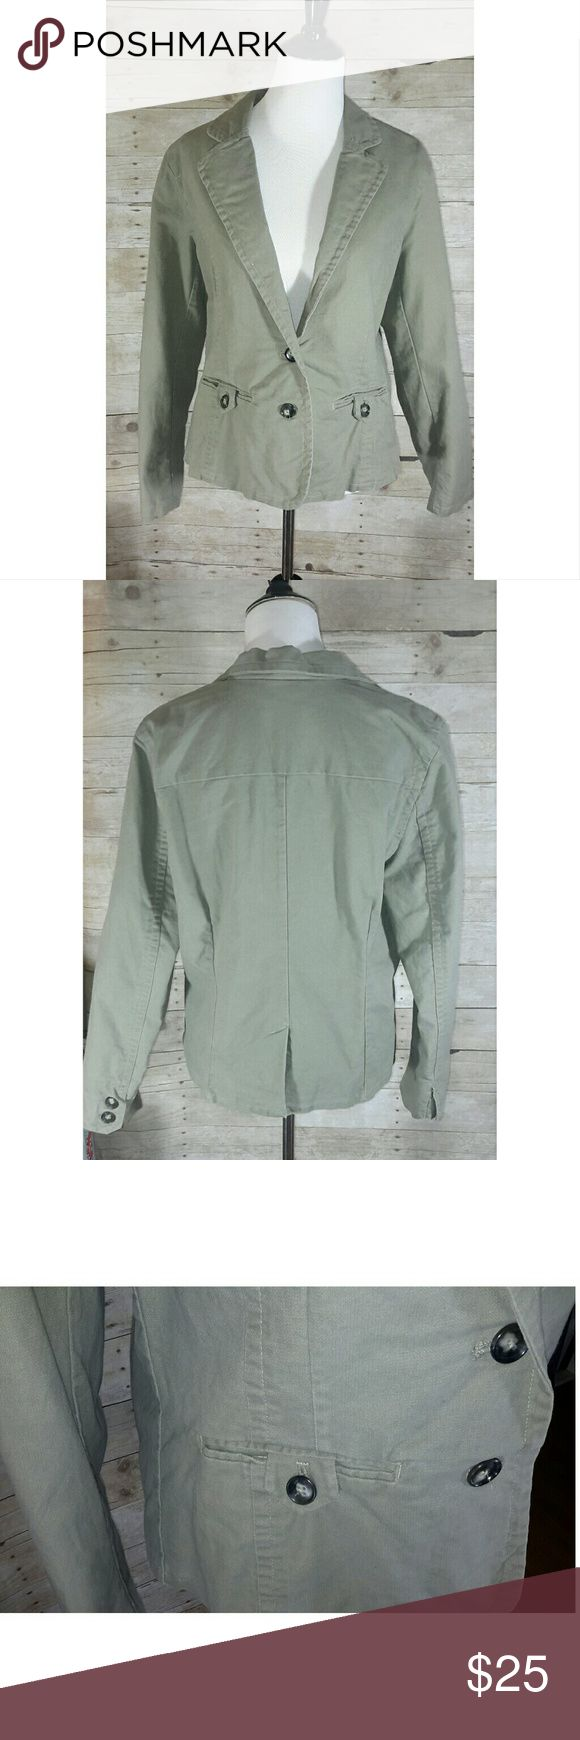 NWT Old Navy Olive Green Jacket New Old Navy jacket in light olive green with a pretty striped interior.  Size x-large.  Measurements  Length  24 Across the back  16.25 Sleeves 24.5  These pictures do not do this jacket justice.   Any questions, please ask.  30 % off Bundles  Happy Poshing! Old Navy Jackets & Coats Blazers